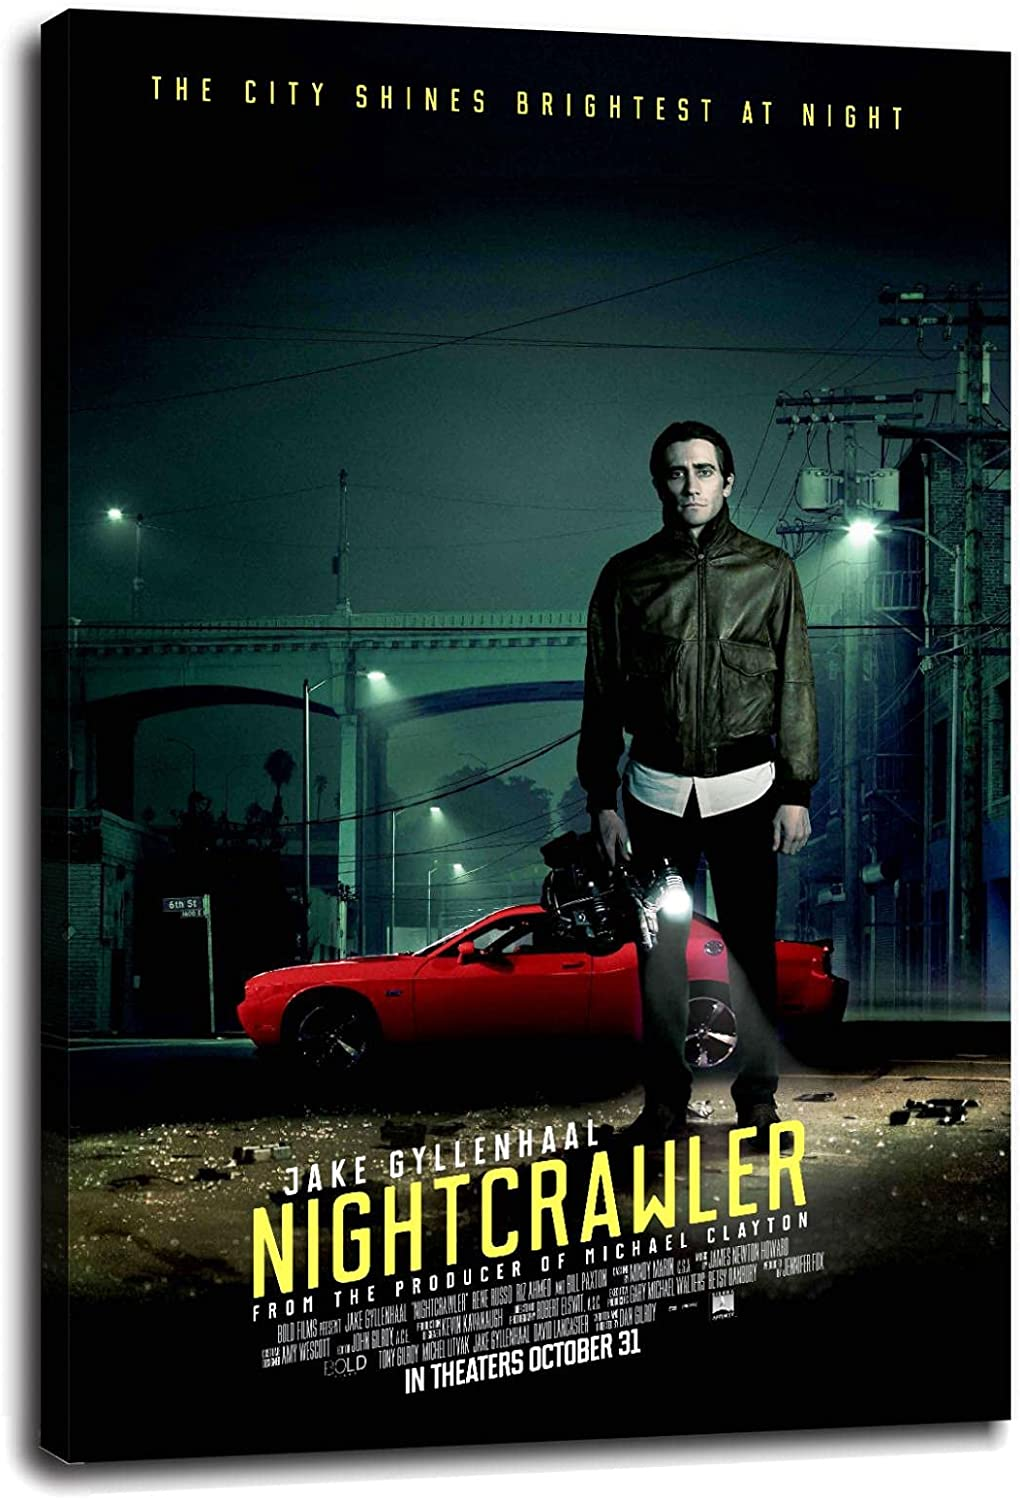 Nightcrawler Poster Canvas Prints Wall Fashionable F NEW before selling Art